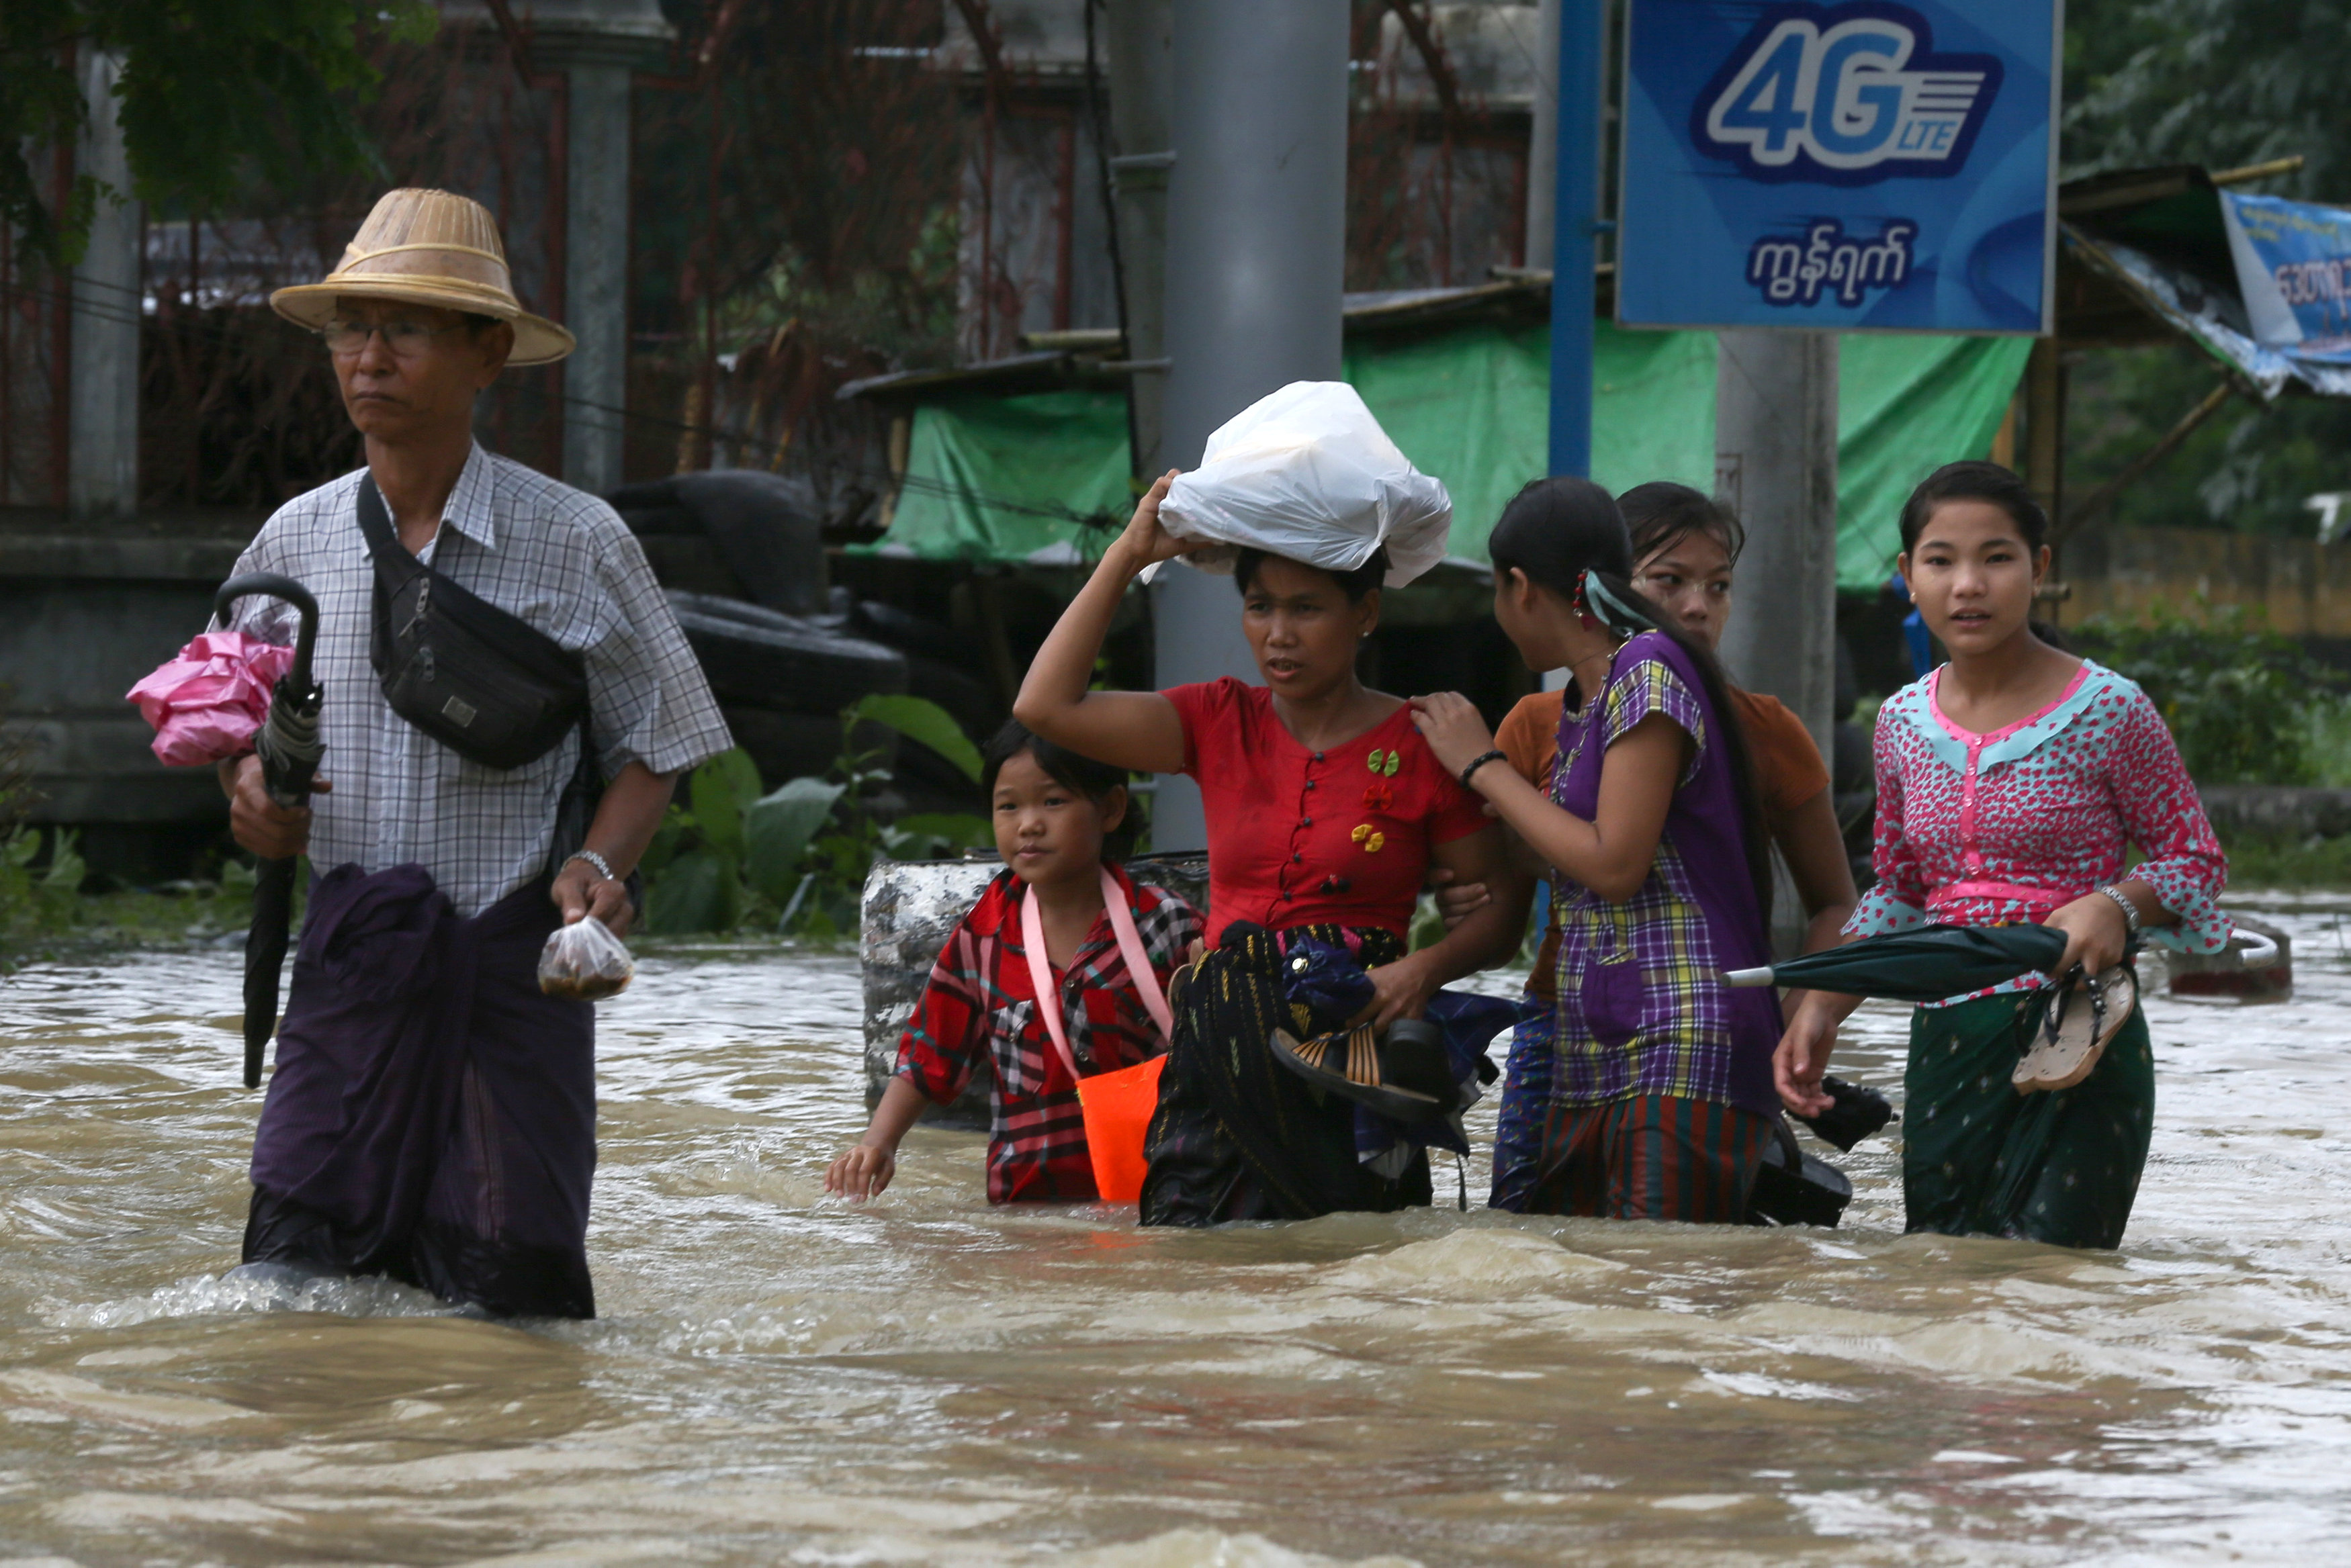 People wade through a flooded street in Bago, Myanmar, July 27, 2018. Picture taken July 27, 2018. Photo: REUTERS